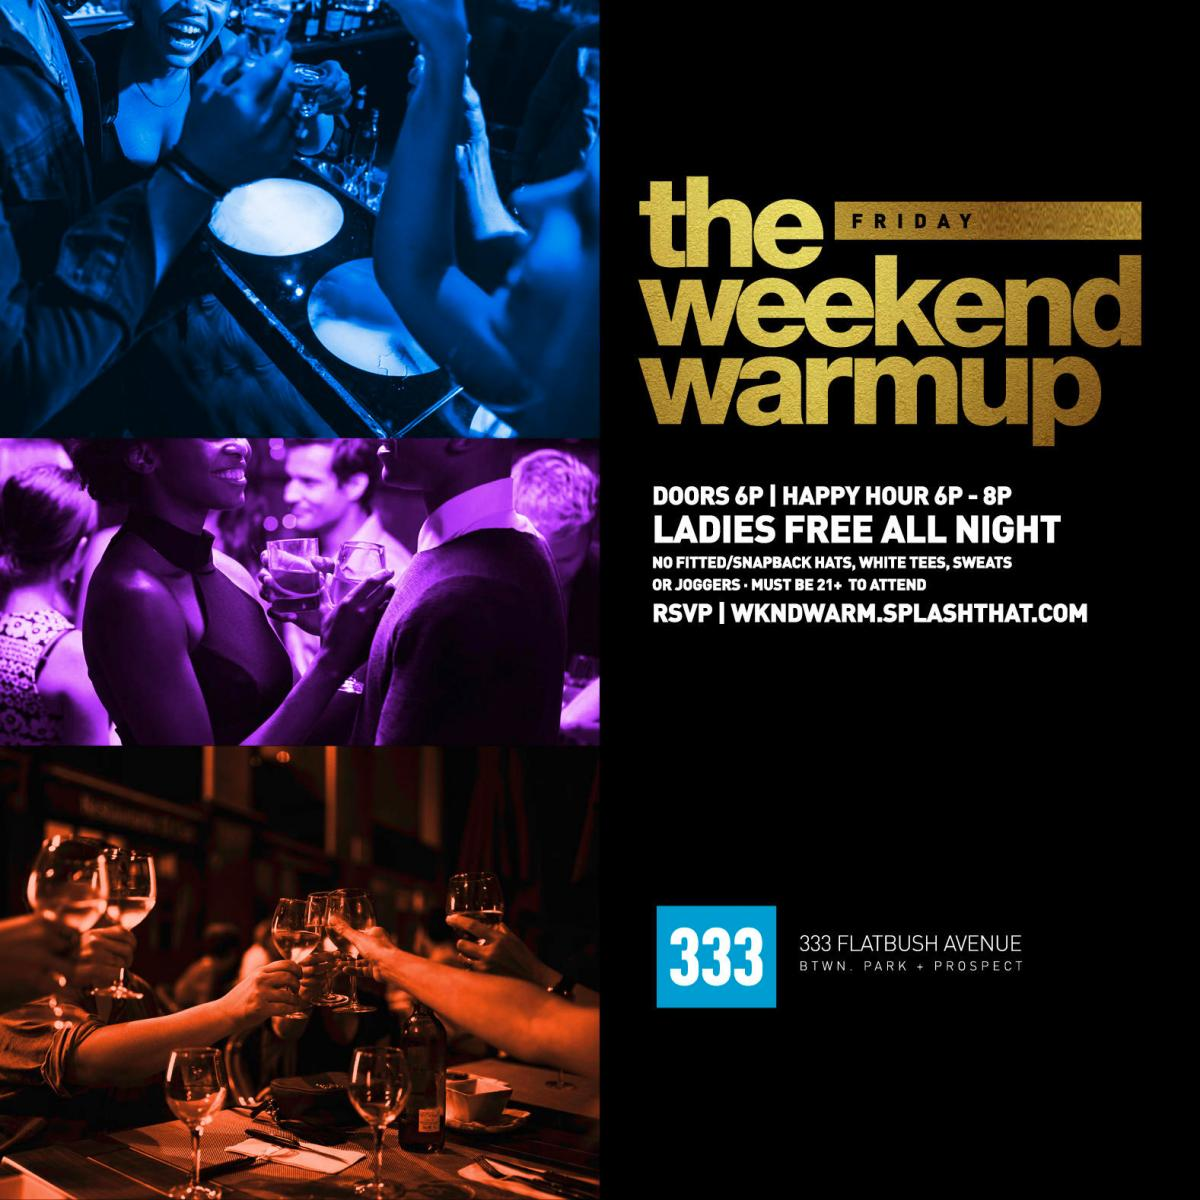 The Weekend Warmup flyer or graphic.